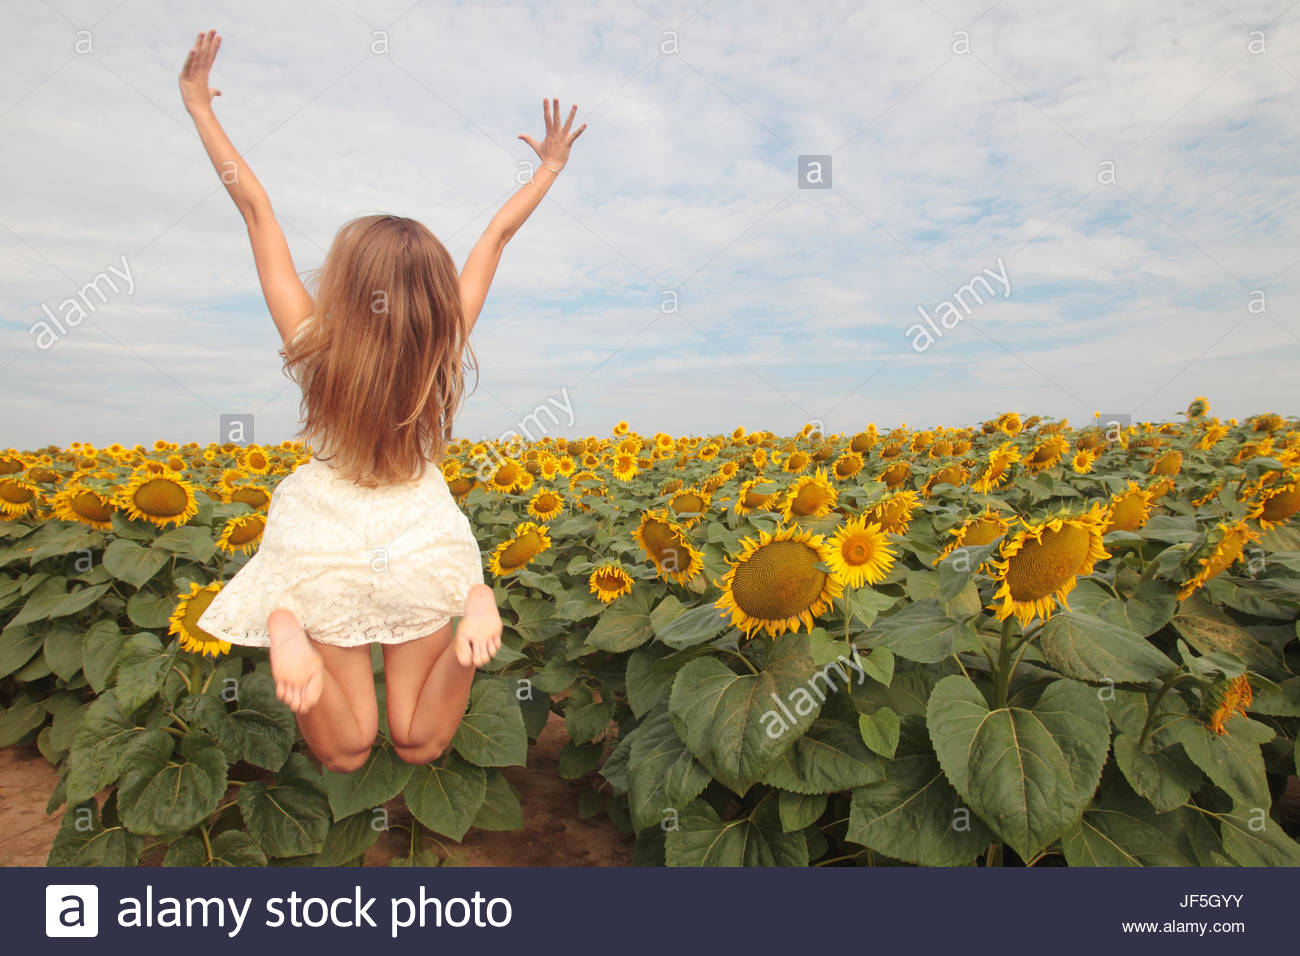 A seventeen-year-old girl reaching for the sky and jumping in a field of sunflowers, Helianthus annuus. - Stock Image